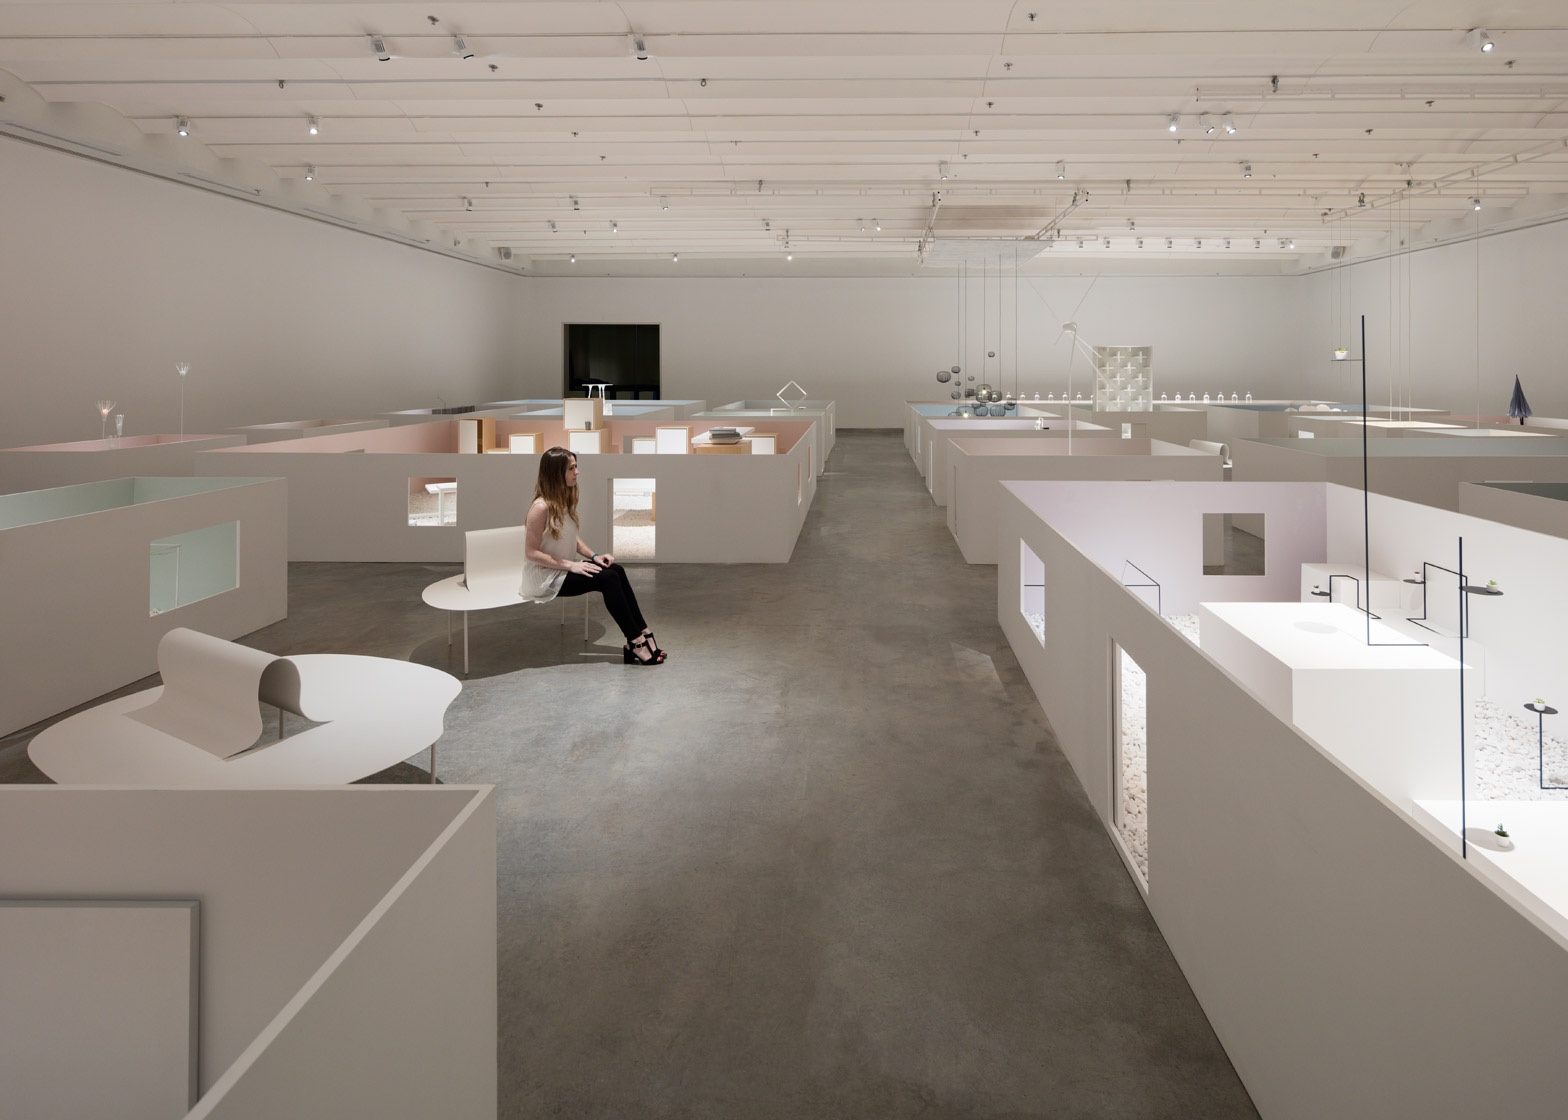 nendo retrospective at the Design Museum Holon